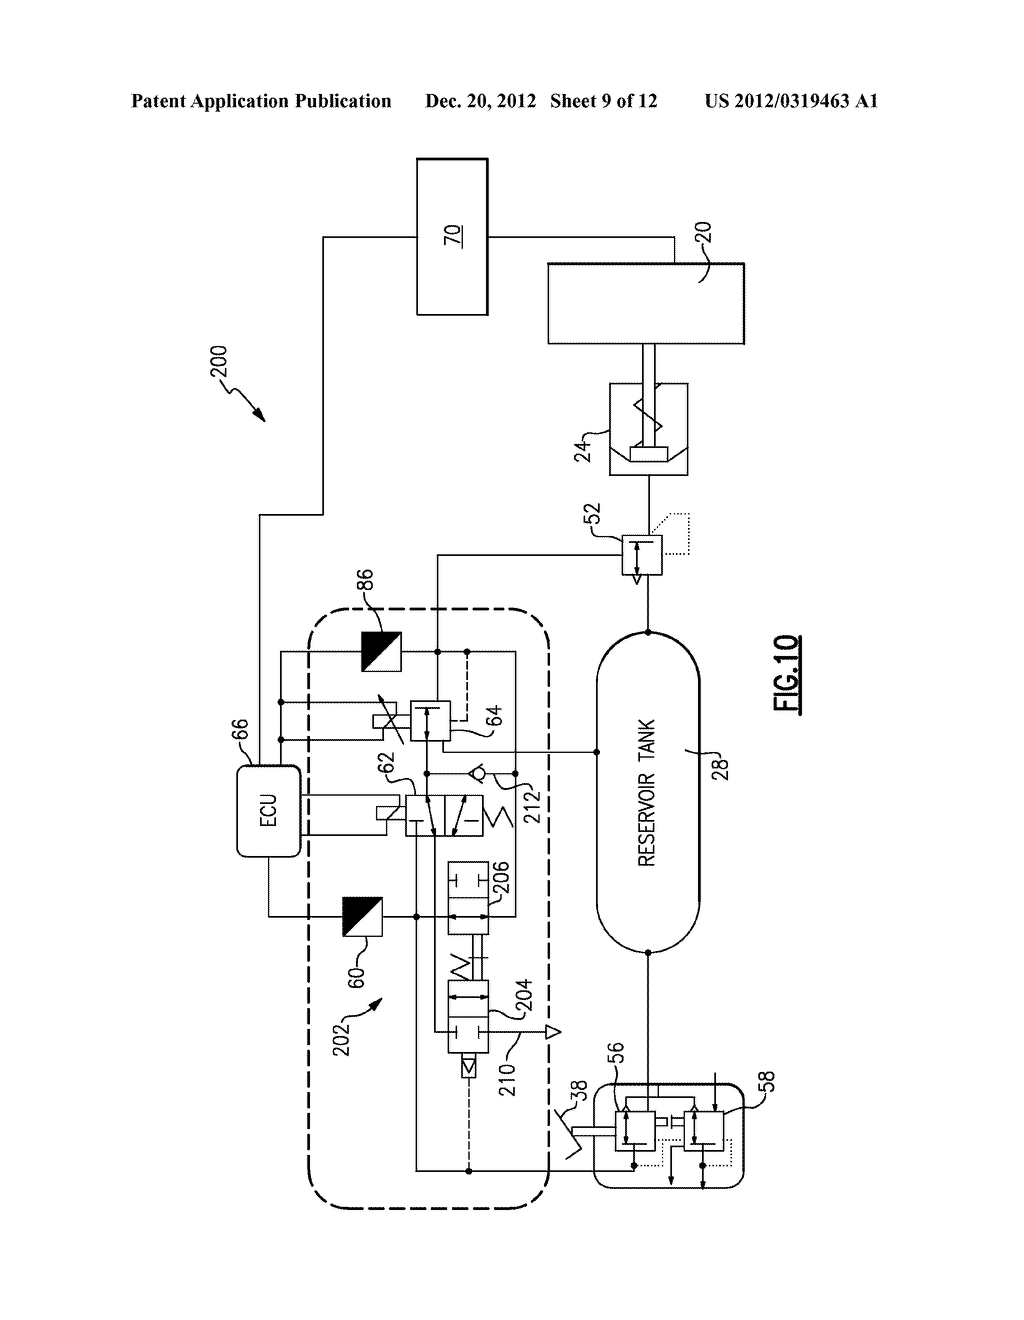 hight resolution of mechanical bypass valve for regenerative air brake module diagram schematic and image 10